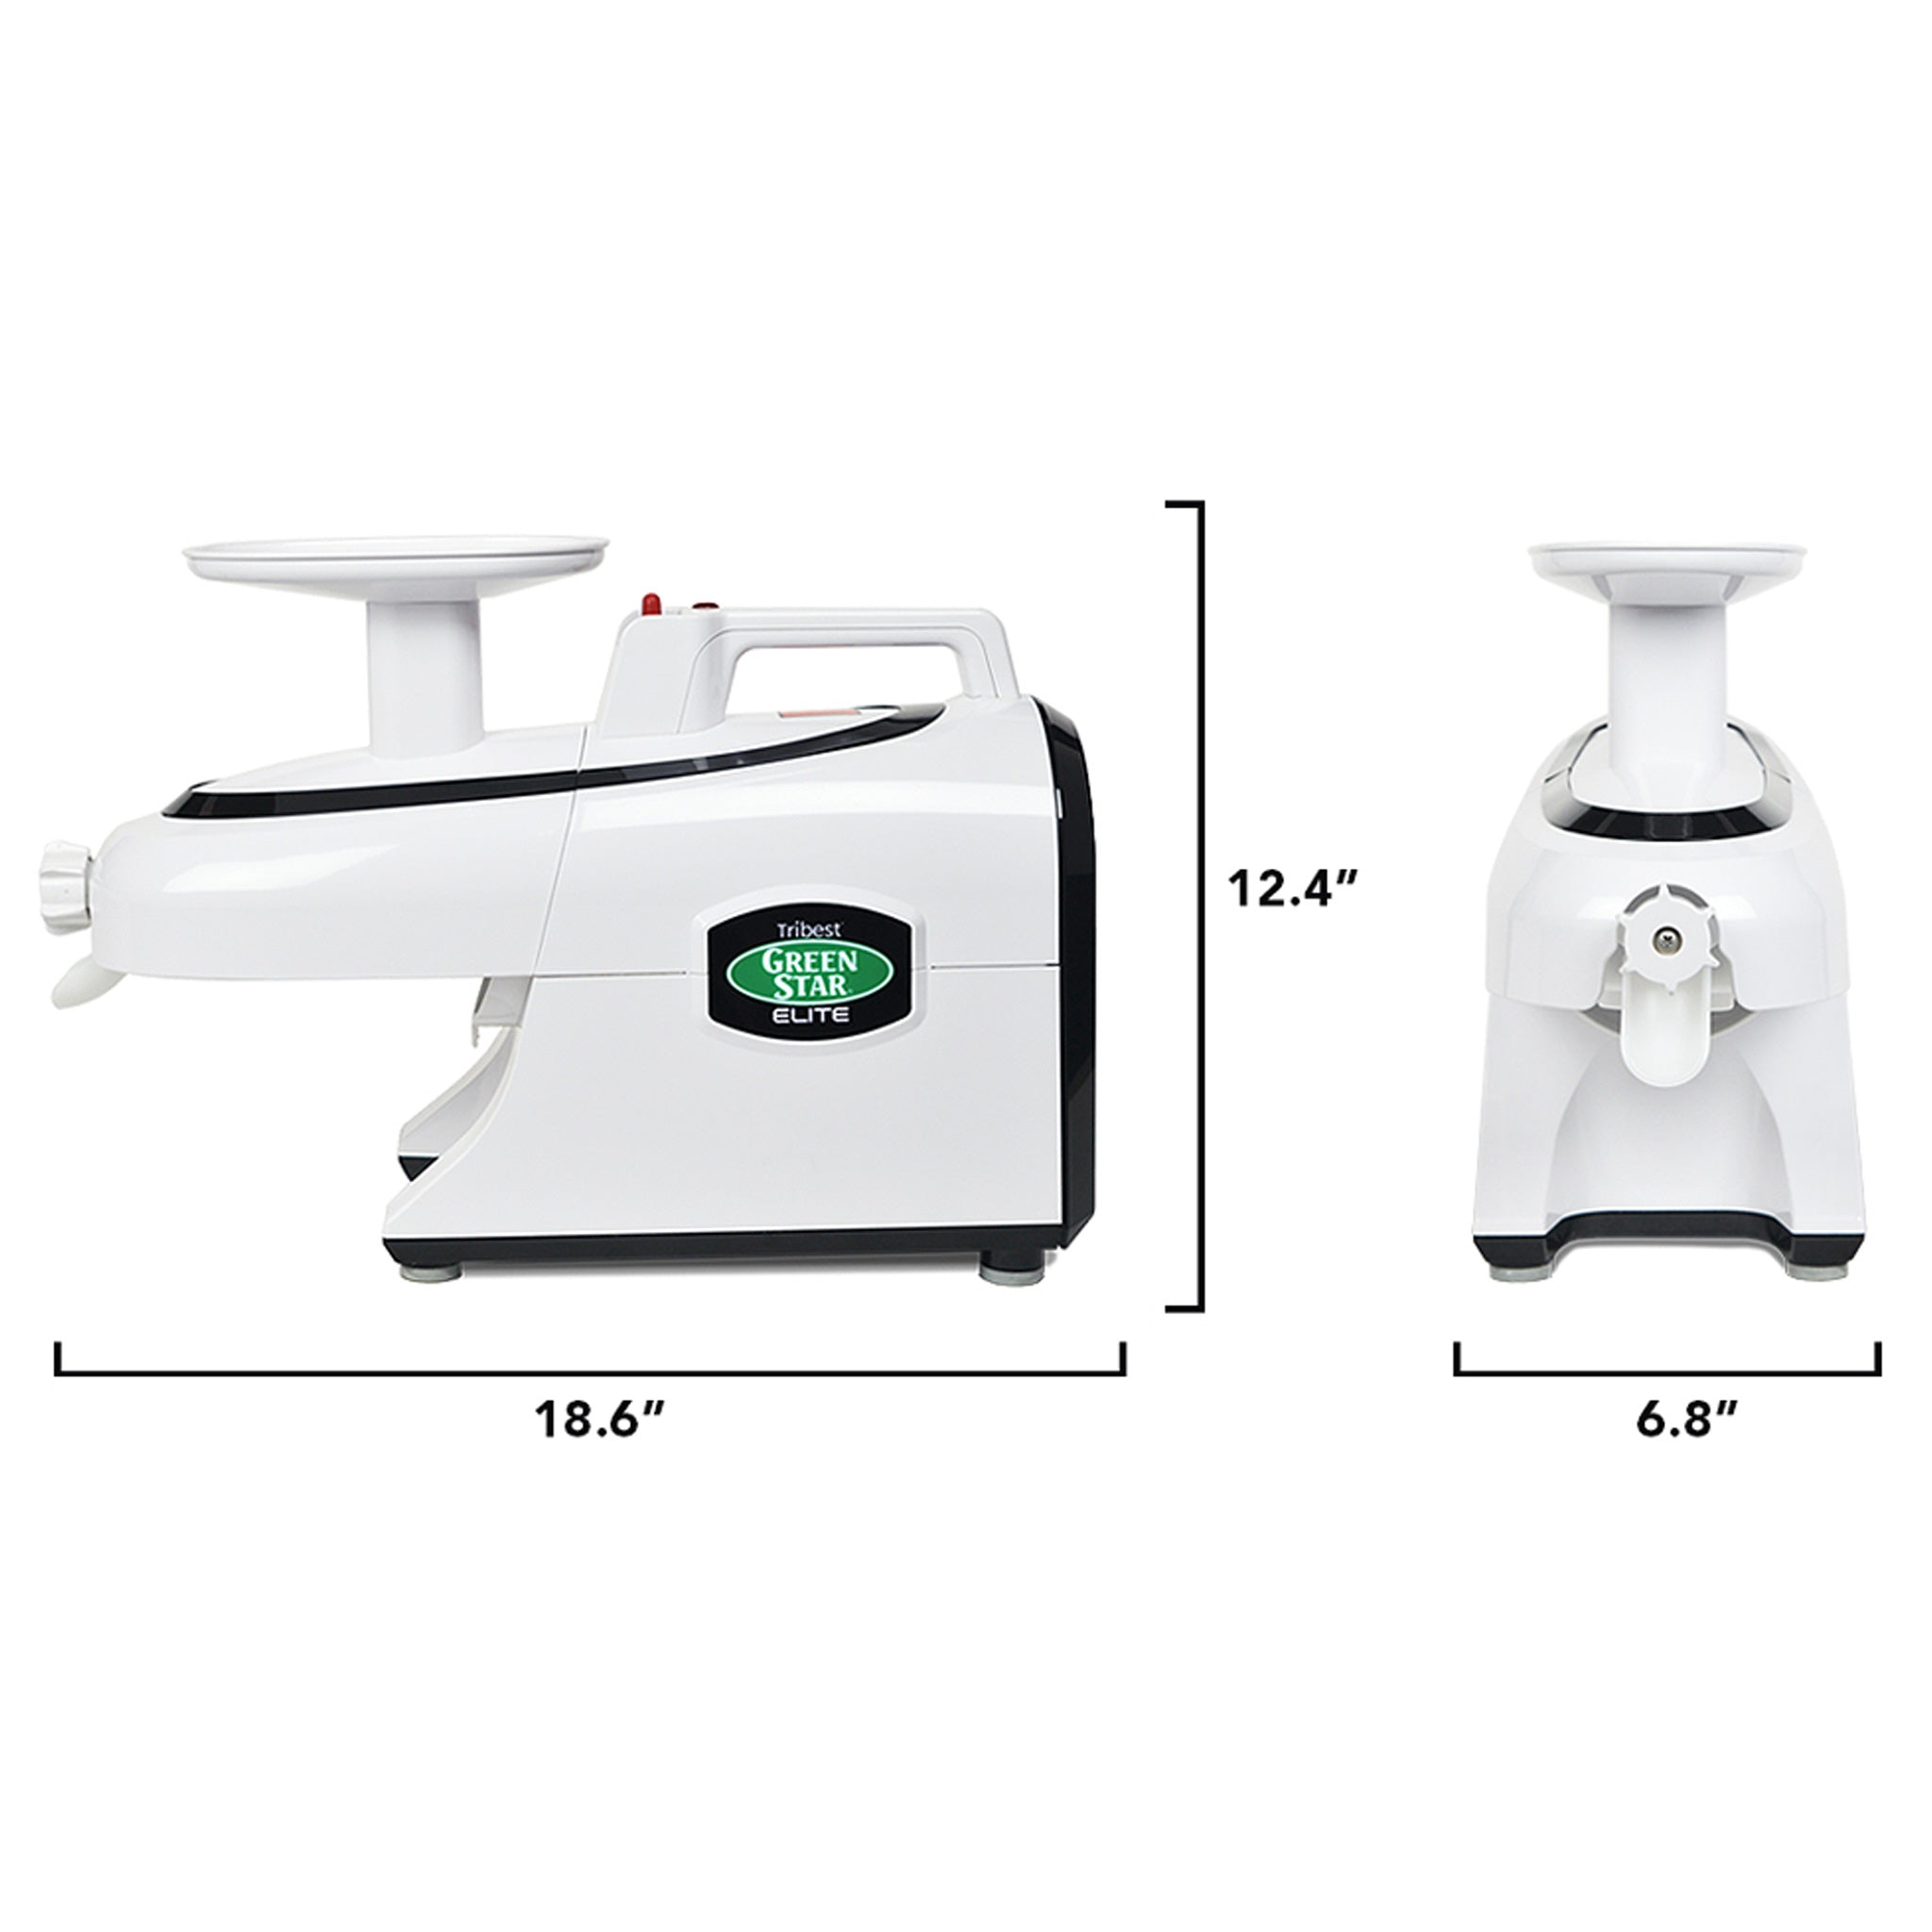 Greenstar® Elite Jumbo Twin Gear Slow Masticating Juicer in White GSE-5000-B - Size 18.6